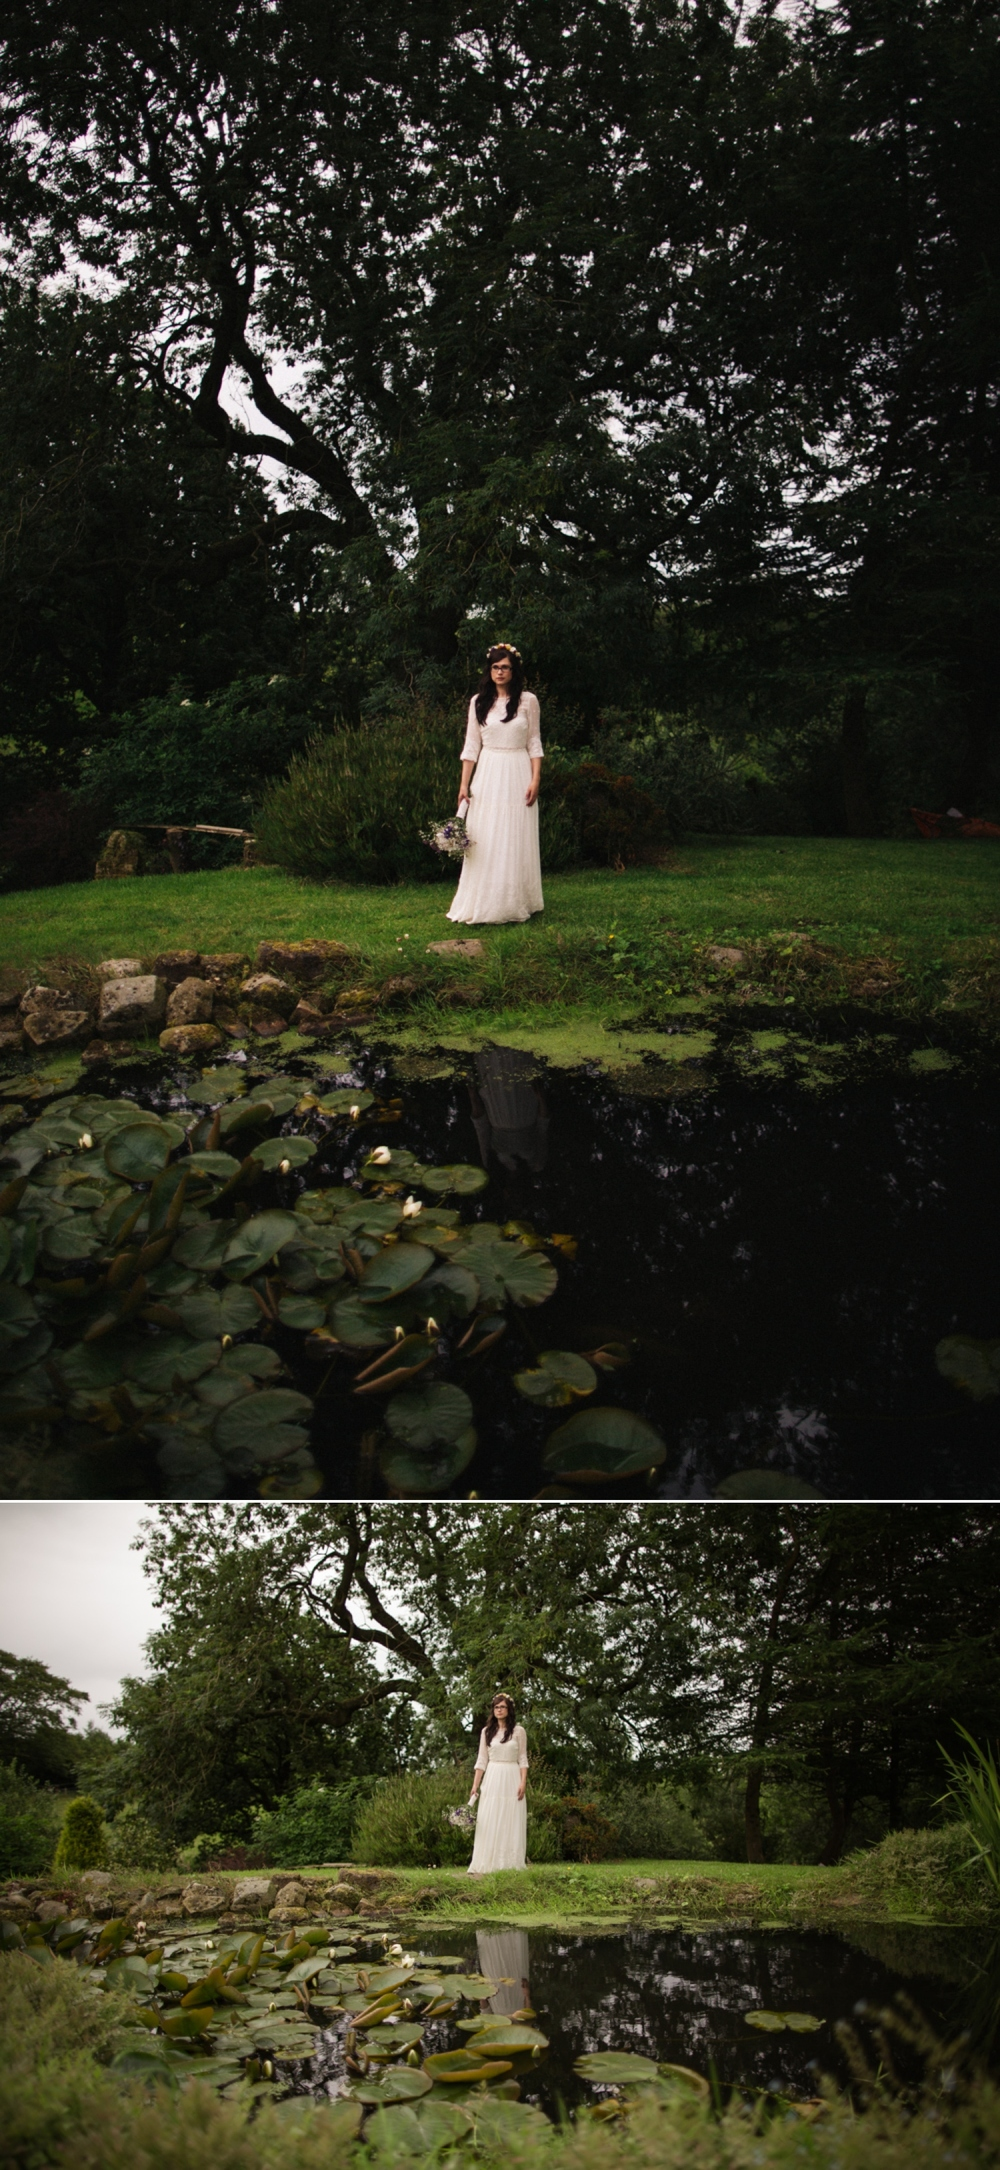 Somerset Wedding Photographer Elly & Liam 10